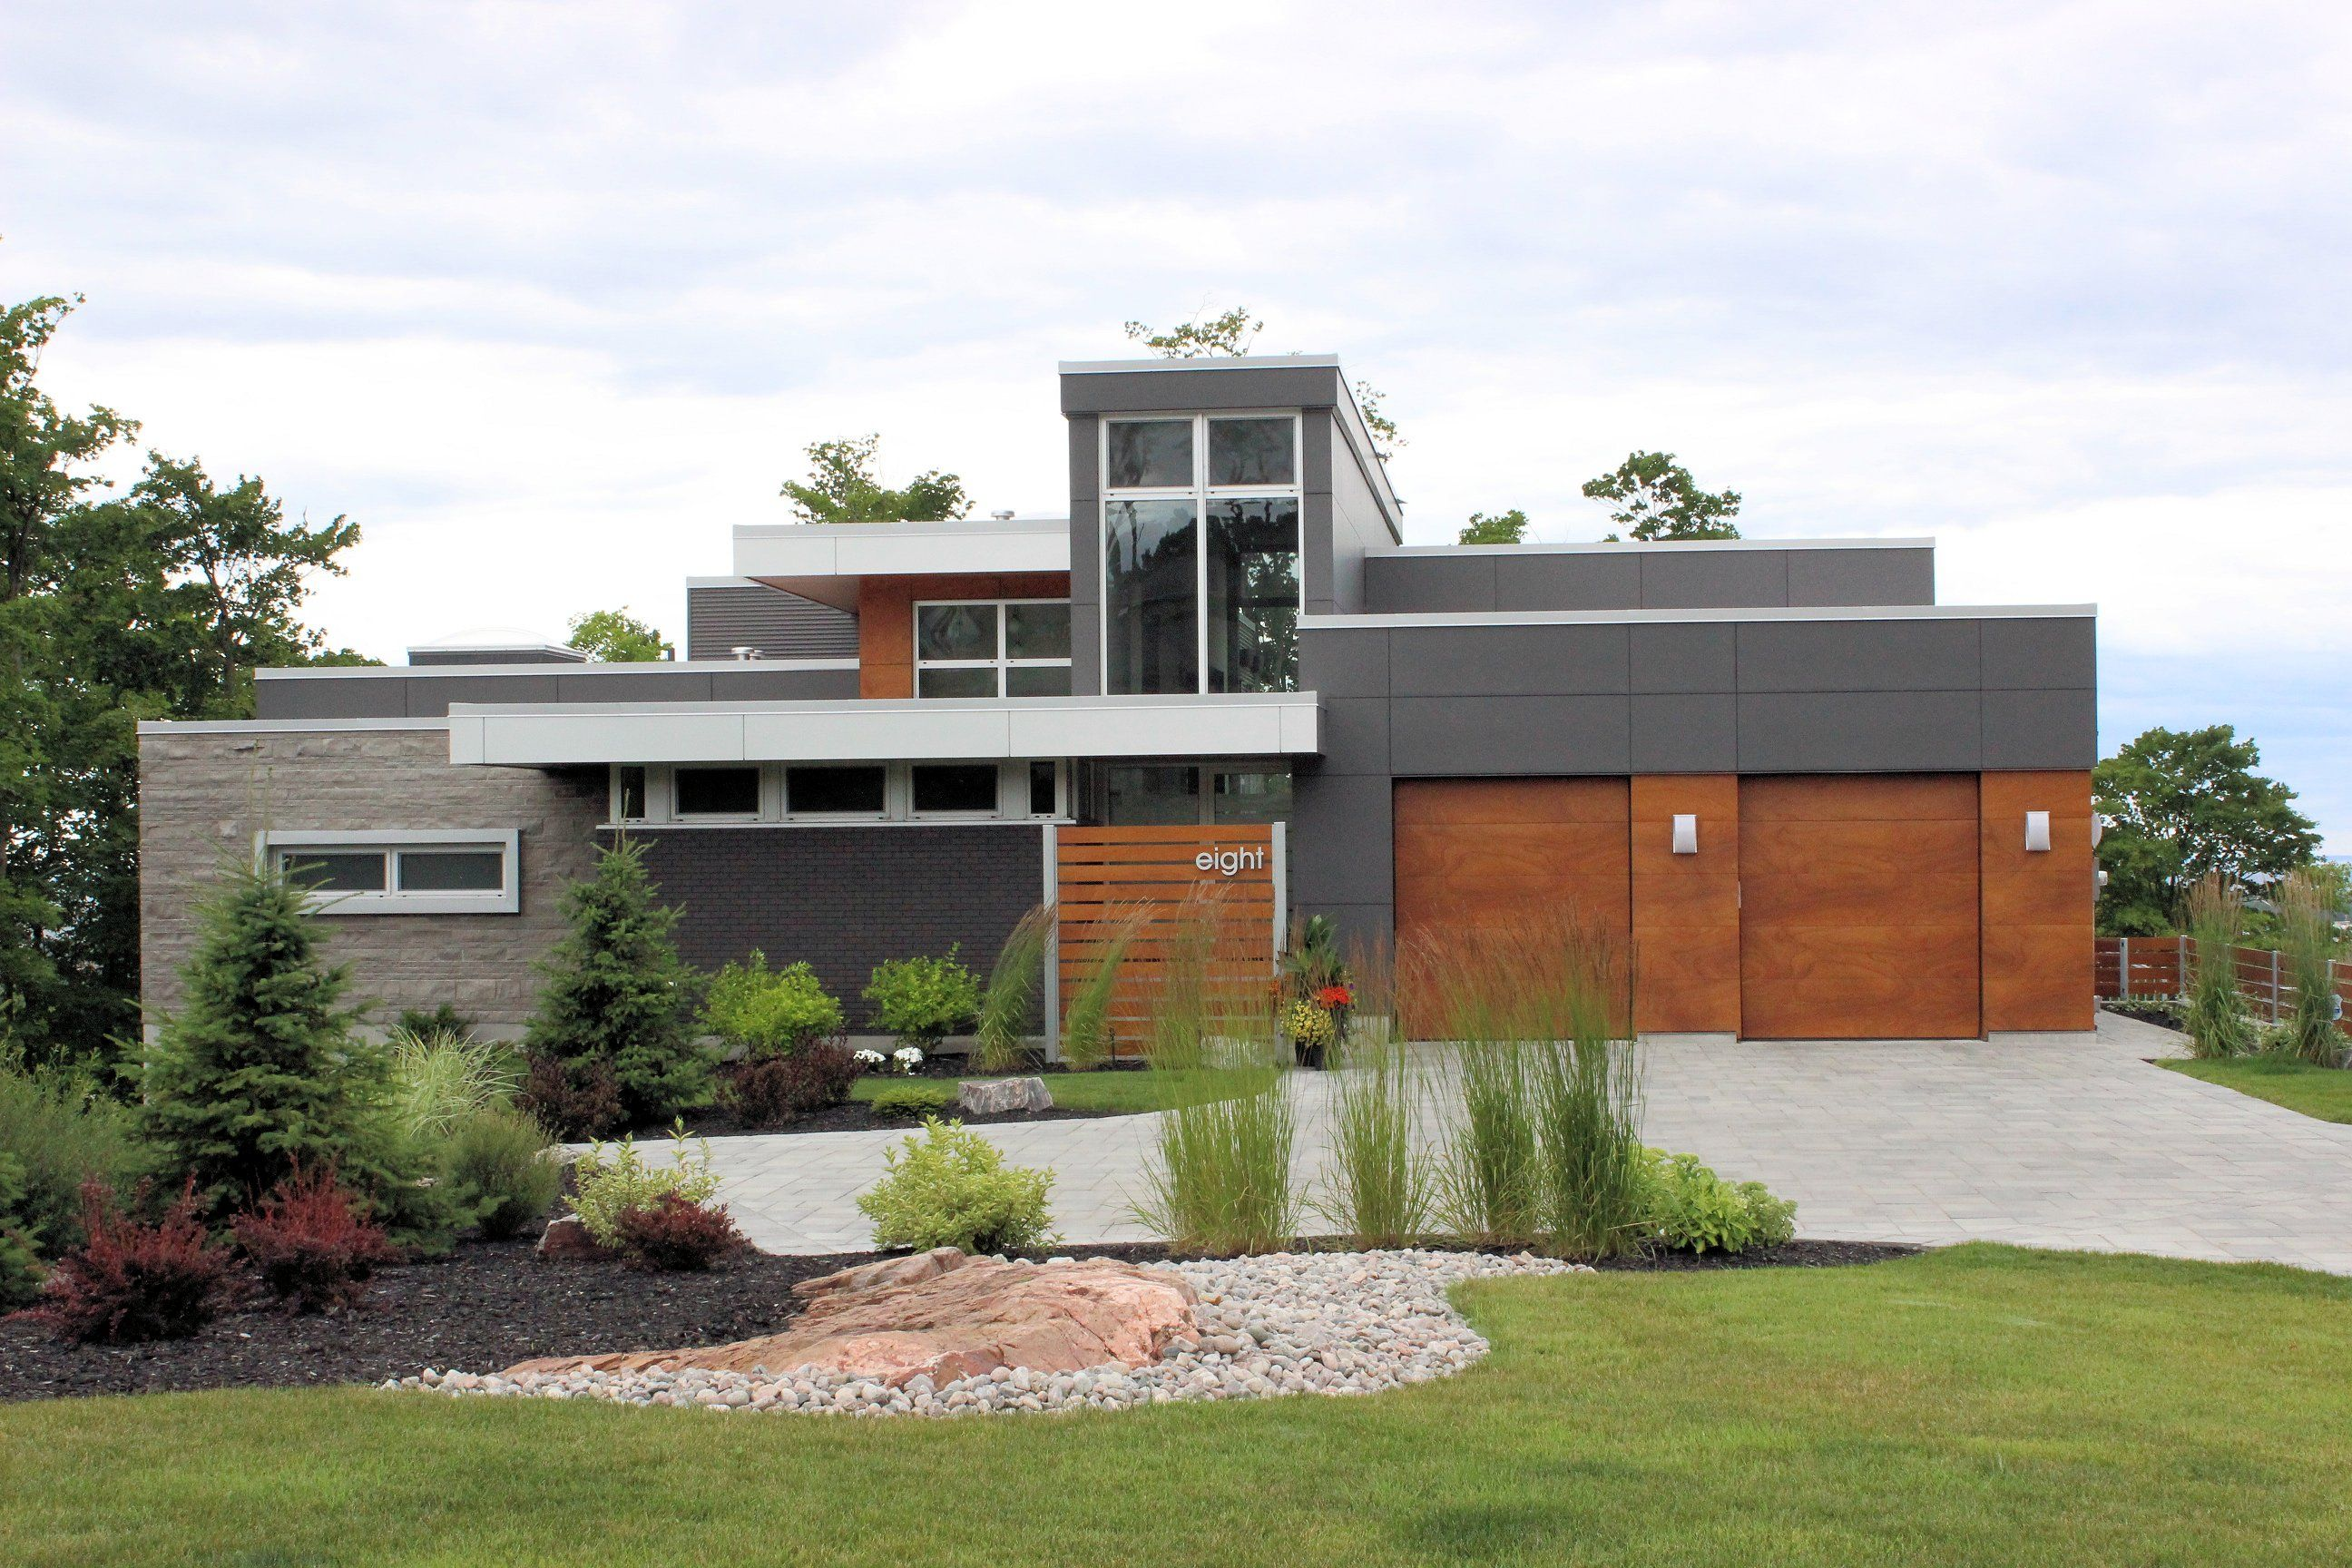 This Residence Northern Ontario Features Equitone Fibre